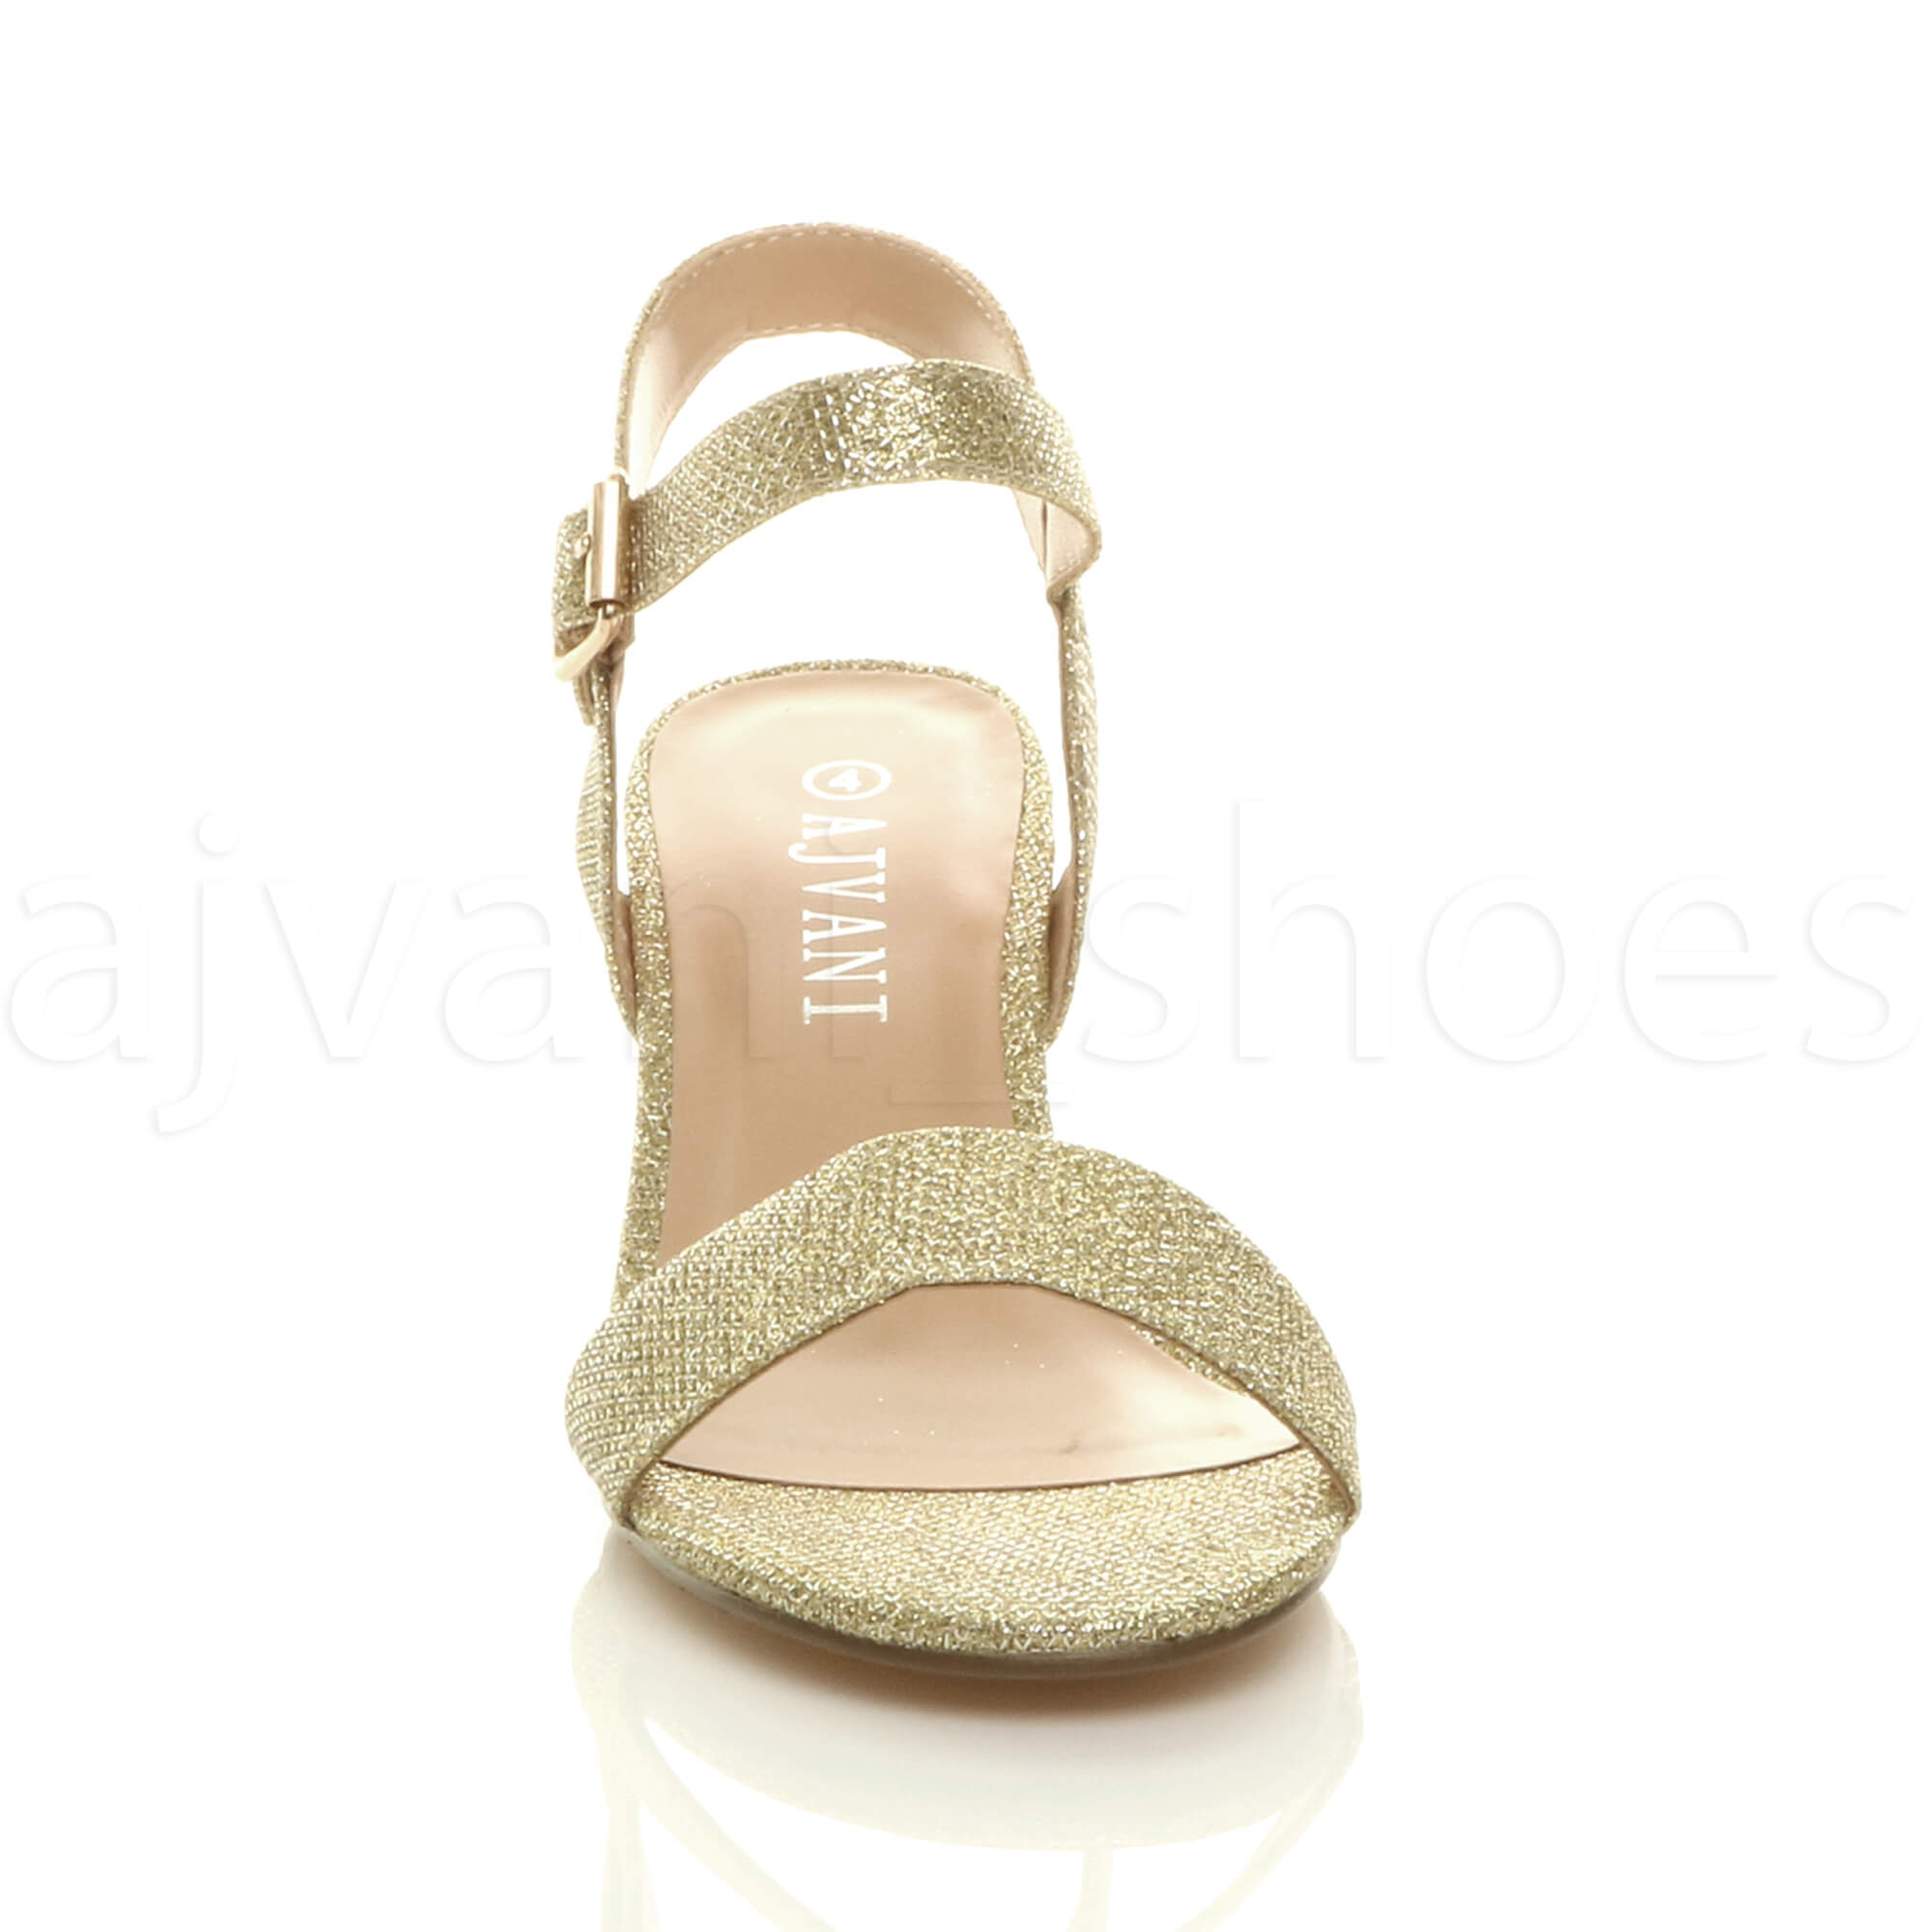 WOMENS-LADIES-MID-LOW-BLOCK-HEEL-PEEP-TOE-ANKLE-STRAP-STRAPPY-PARTY-SANDALS-SIZE thumbnail 55